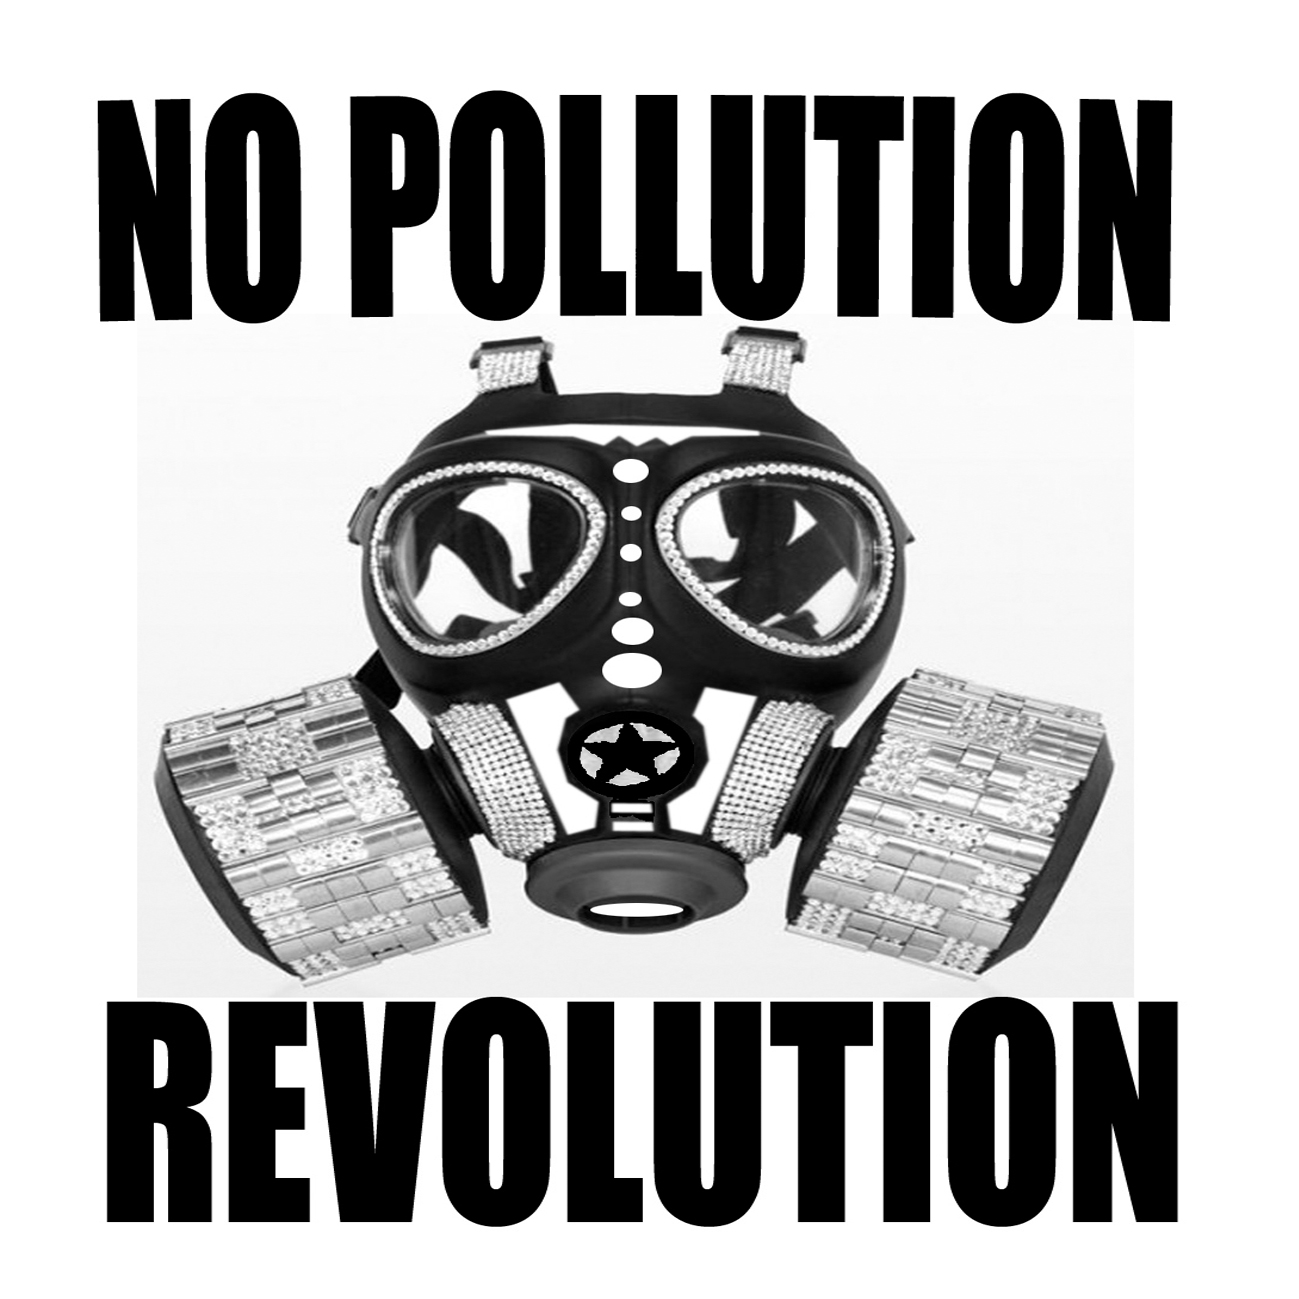 the revolution will not be televised (but it will be on the internet)